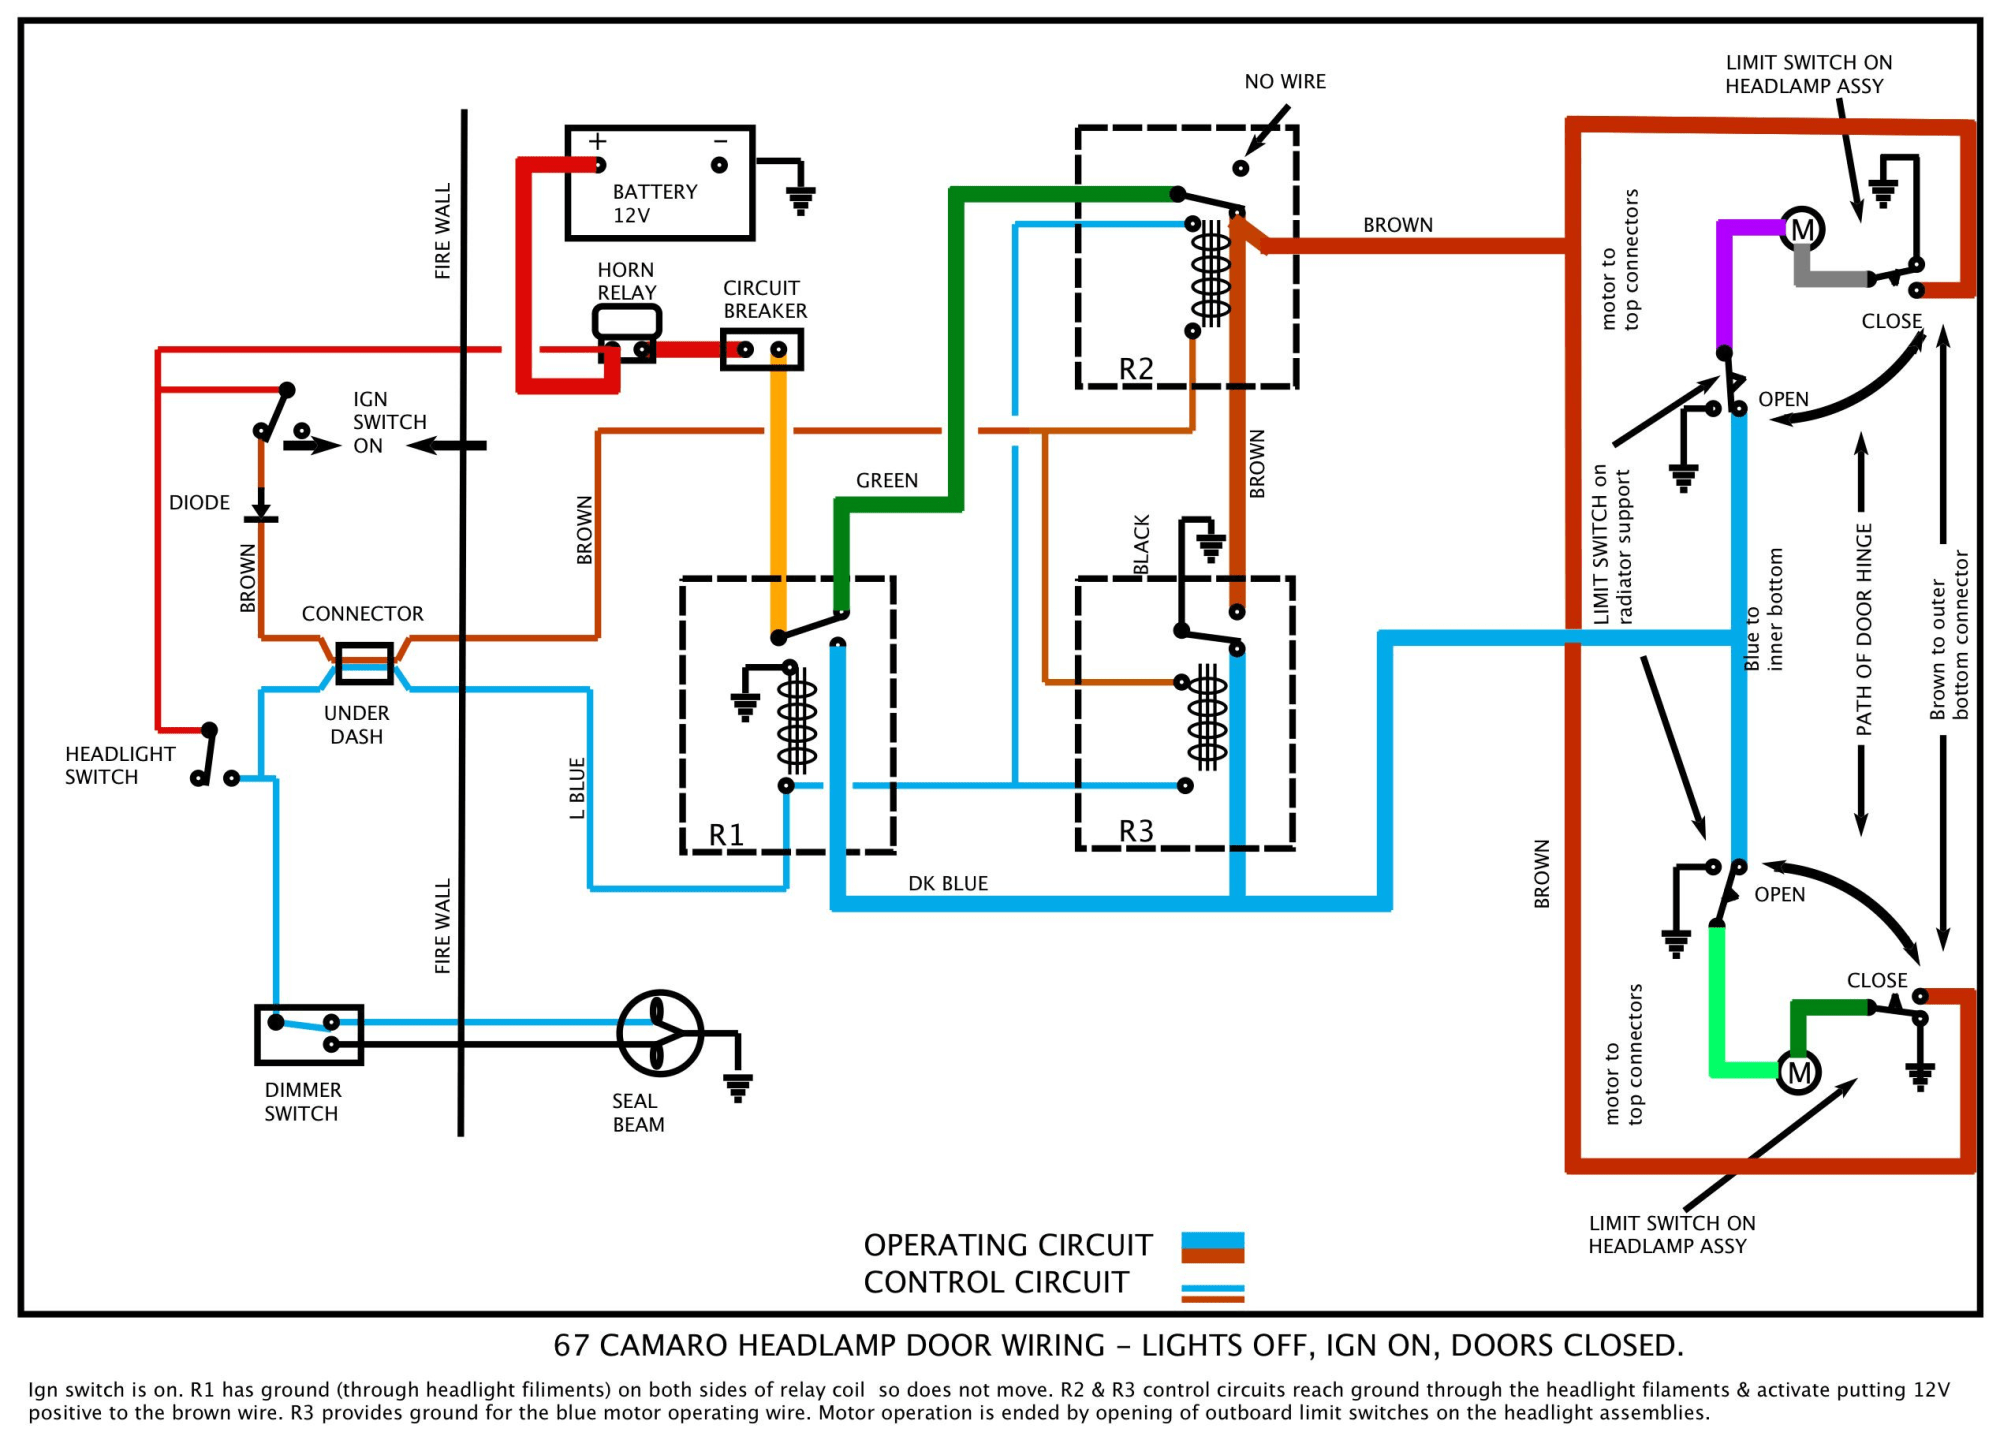 hight resolution of camaro dash wiring diagram 1970 camaro wiring diagram 1967 camaro gm headlight switch wiring diagram 1970